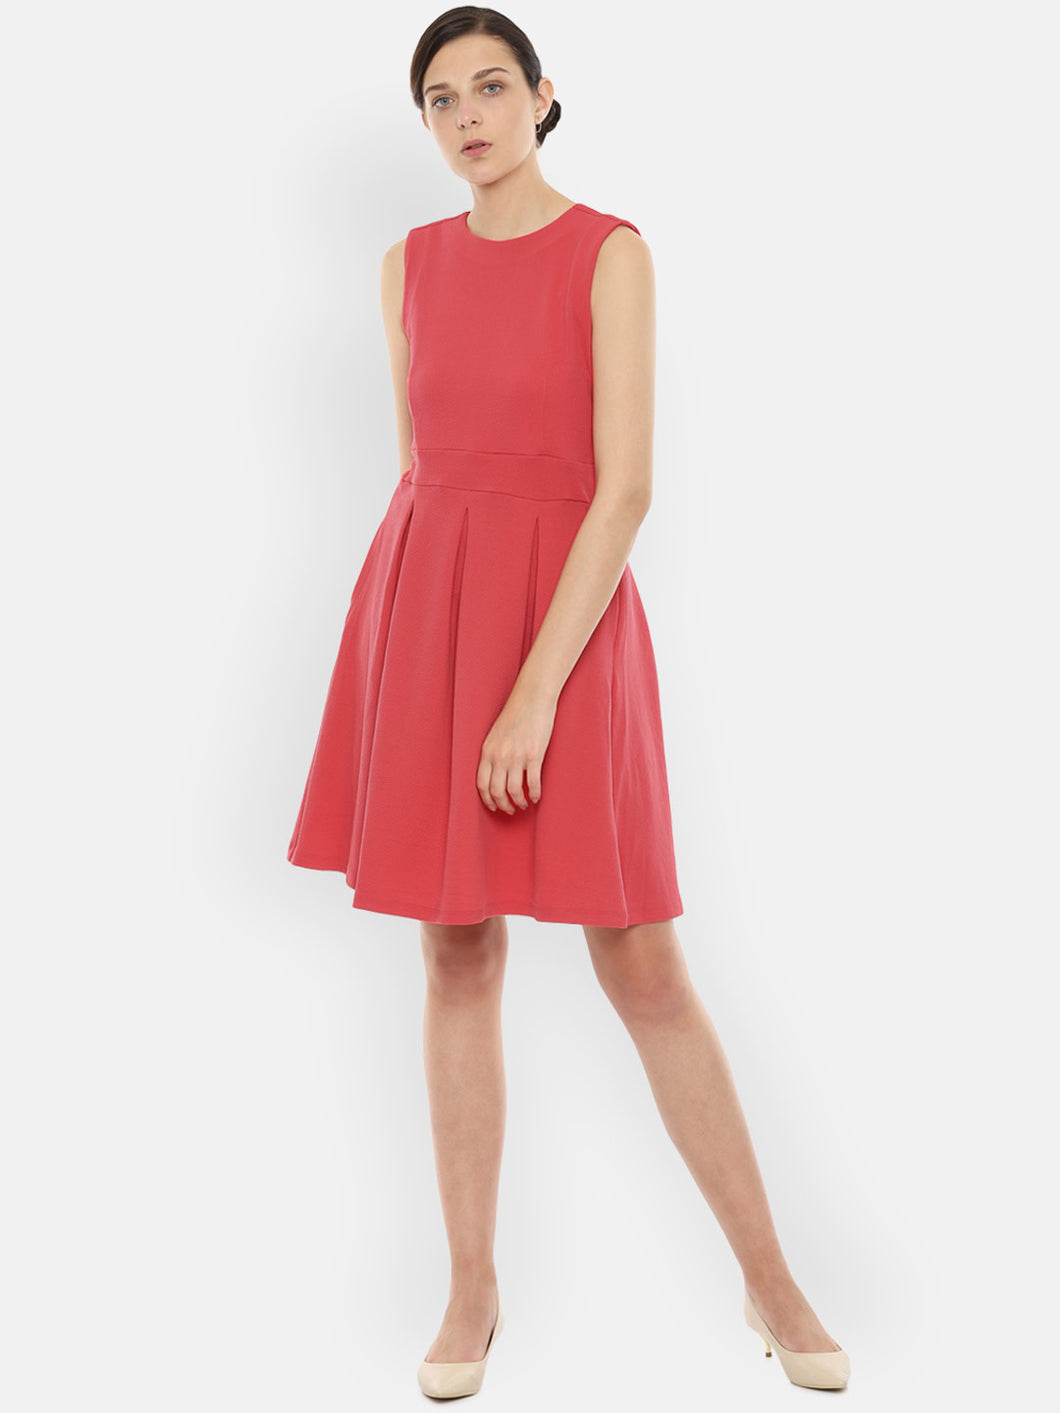 Queen ellie Women Solid Peach-Coloured Fit and Flare Dress